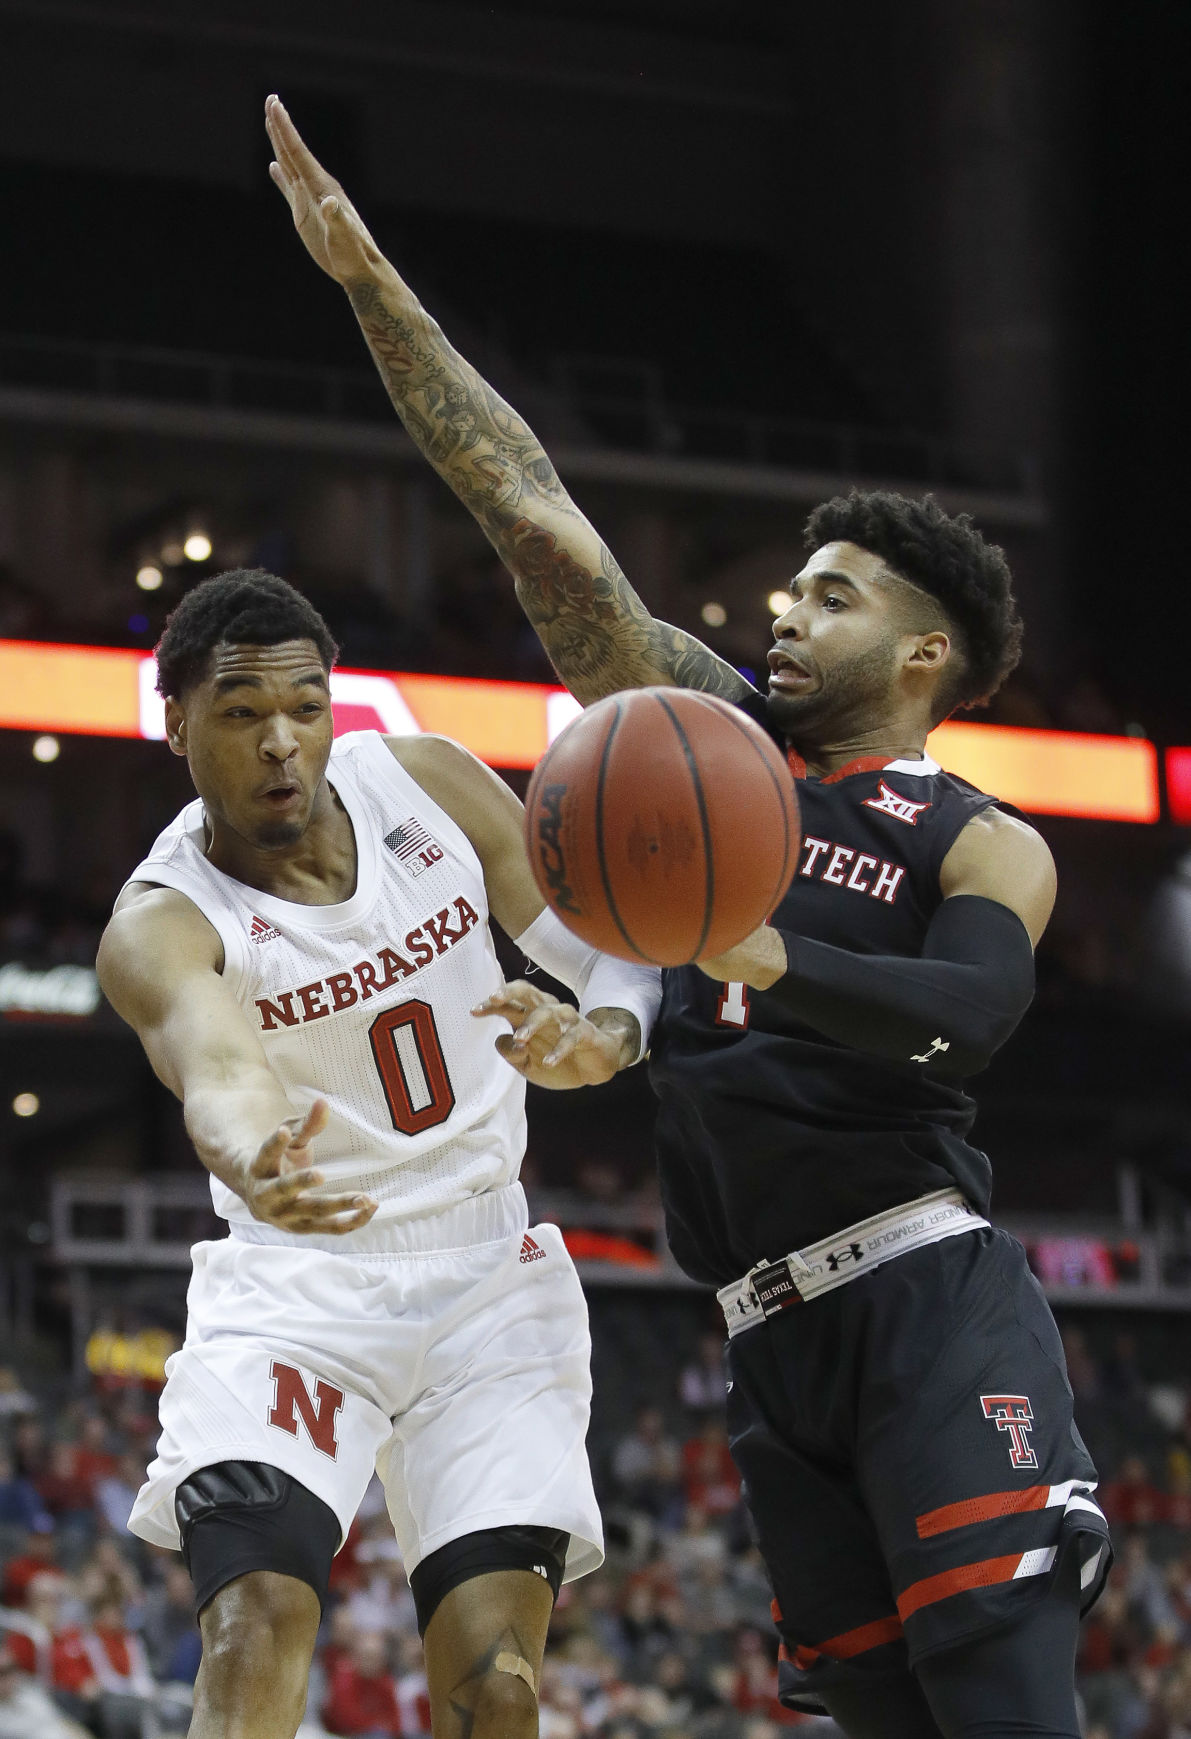 Texas Tech Nebraska Basketball